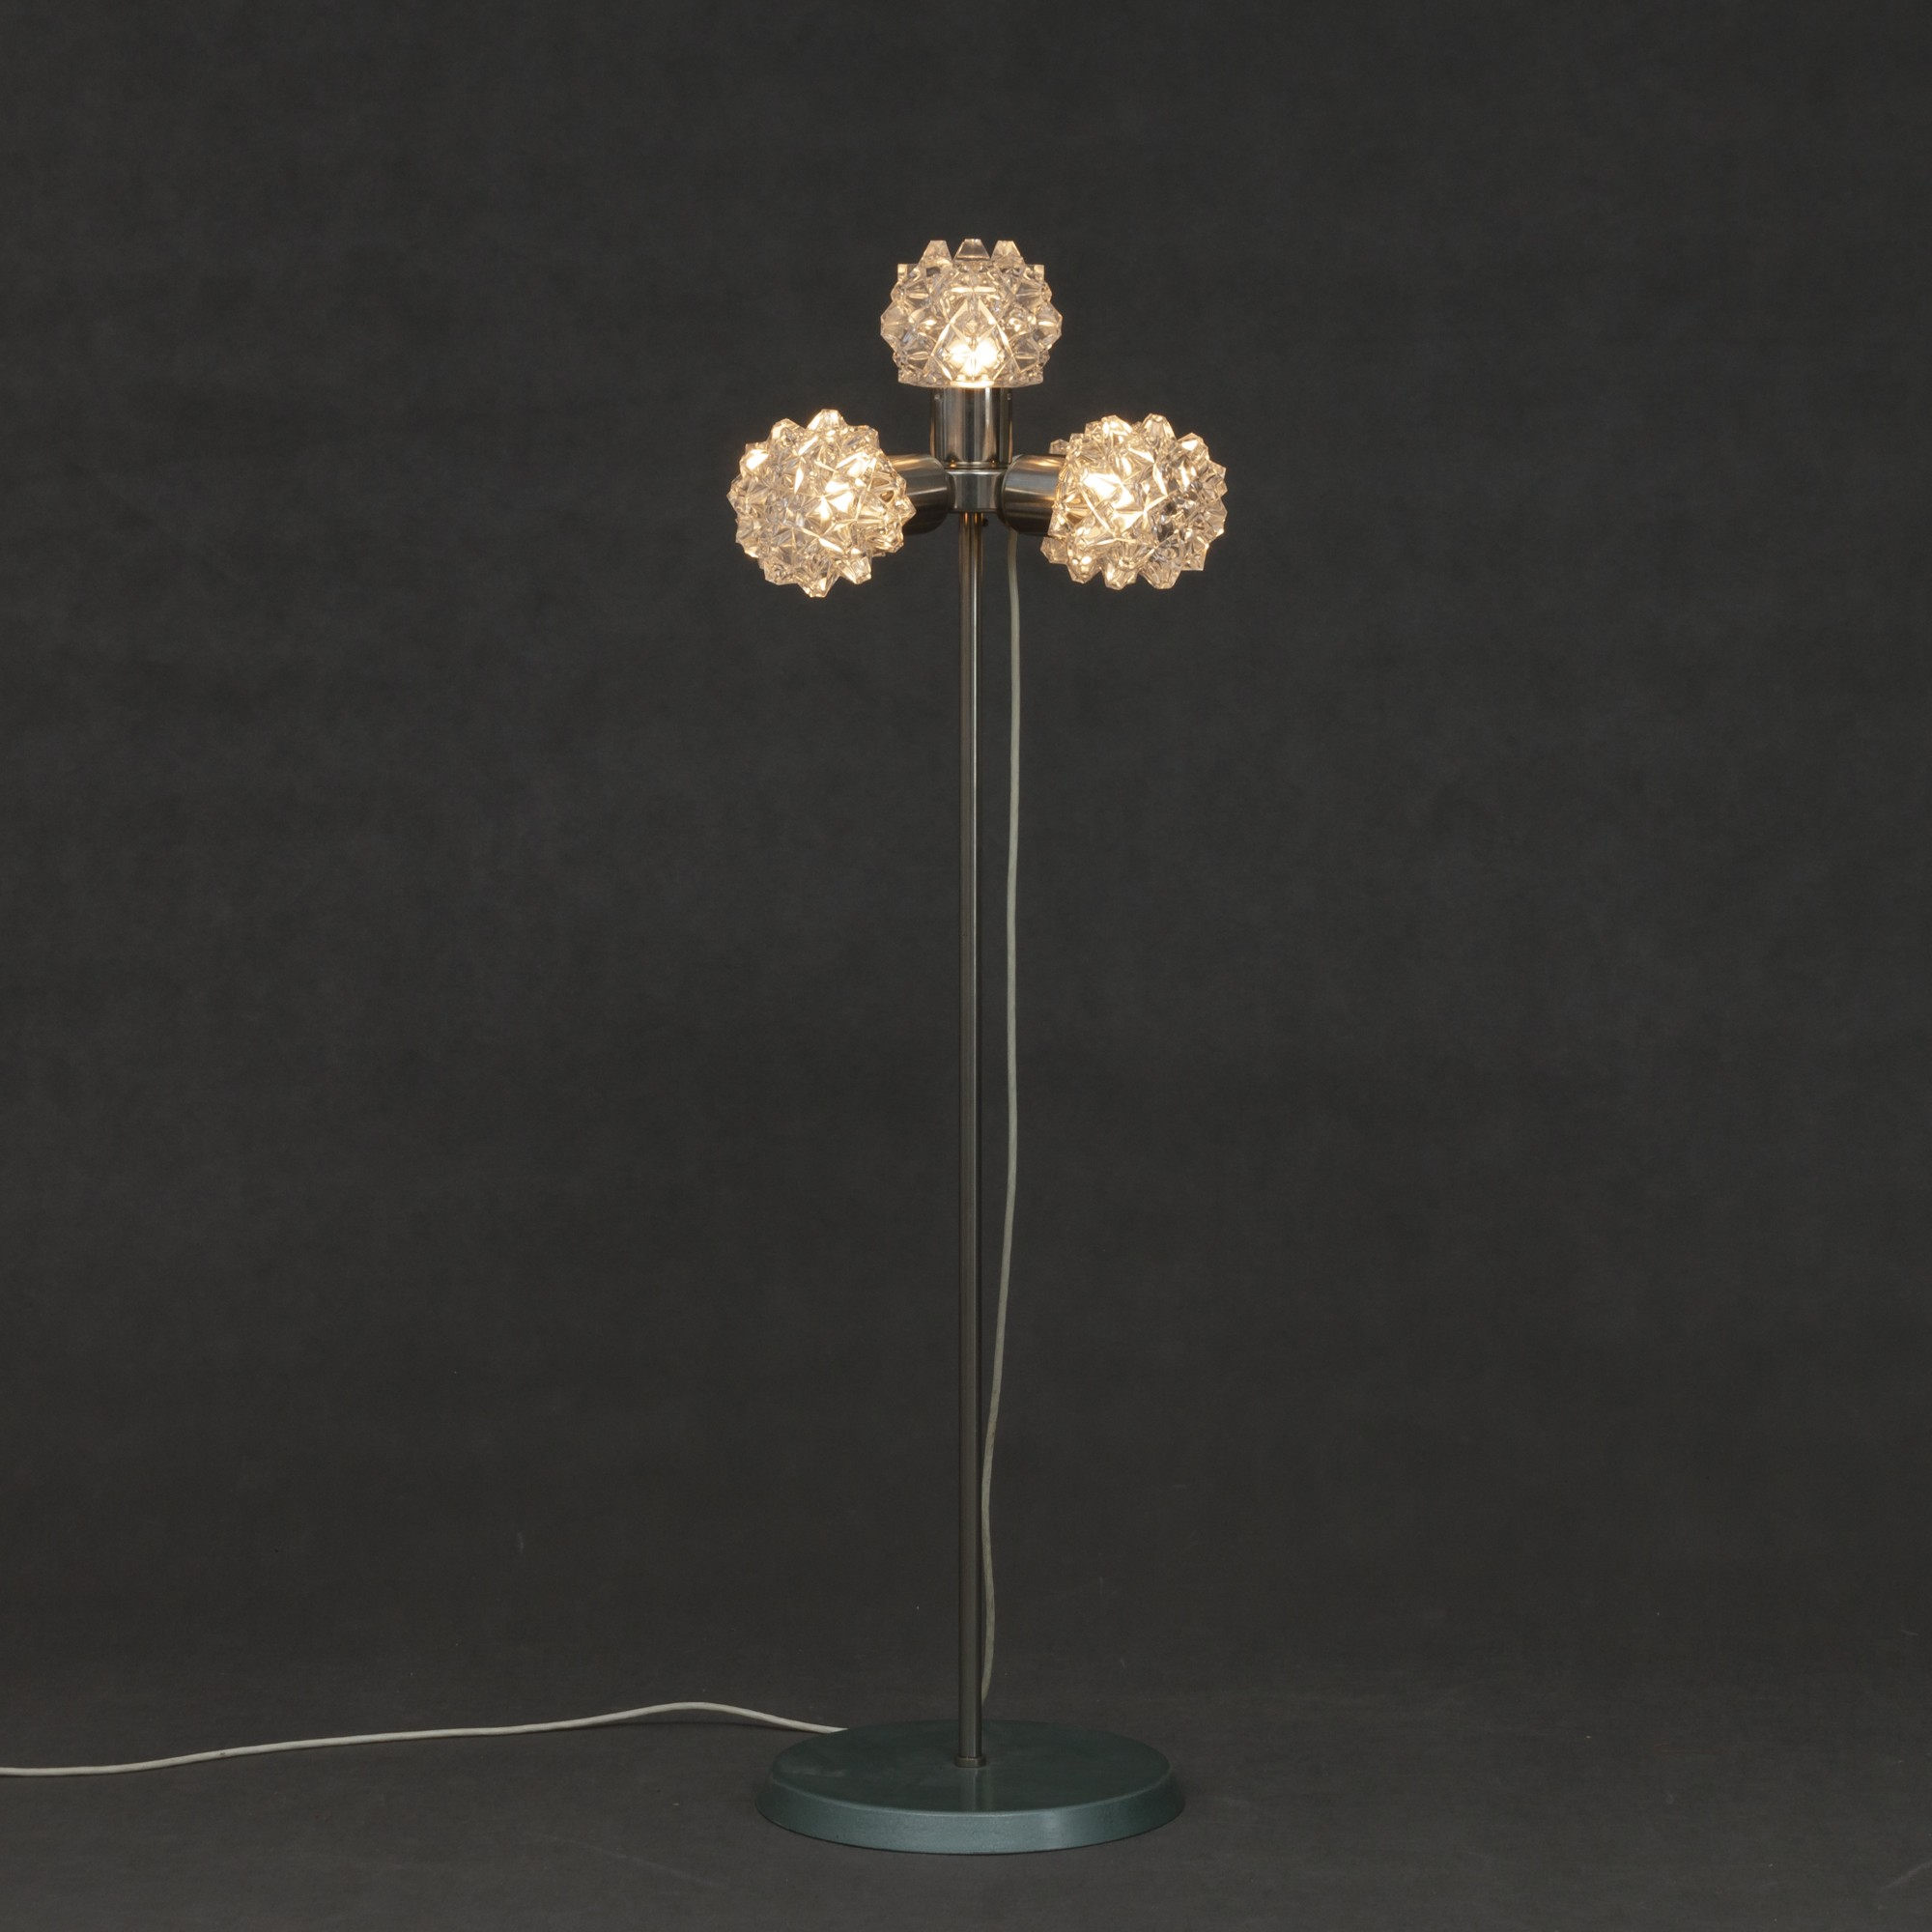 with copper table inside fantastic size style attached vintage metal design modern on glass kathy of lamp contemporary chrome lamps antique spotlight photo brass for shades column stunning floors desk flooring floor chandelier full torchiere wofi homeofficedecoration uncategorized industrial arc